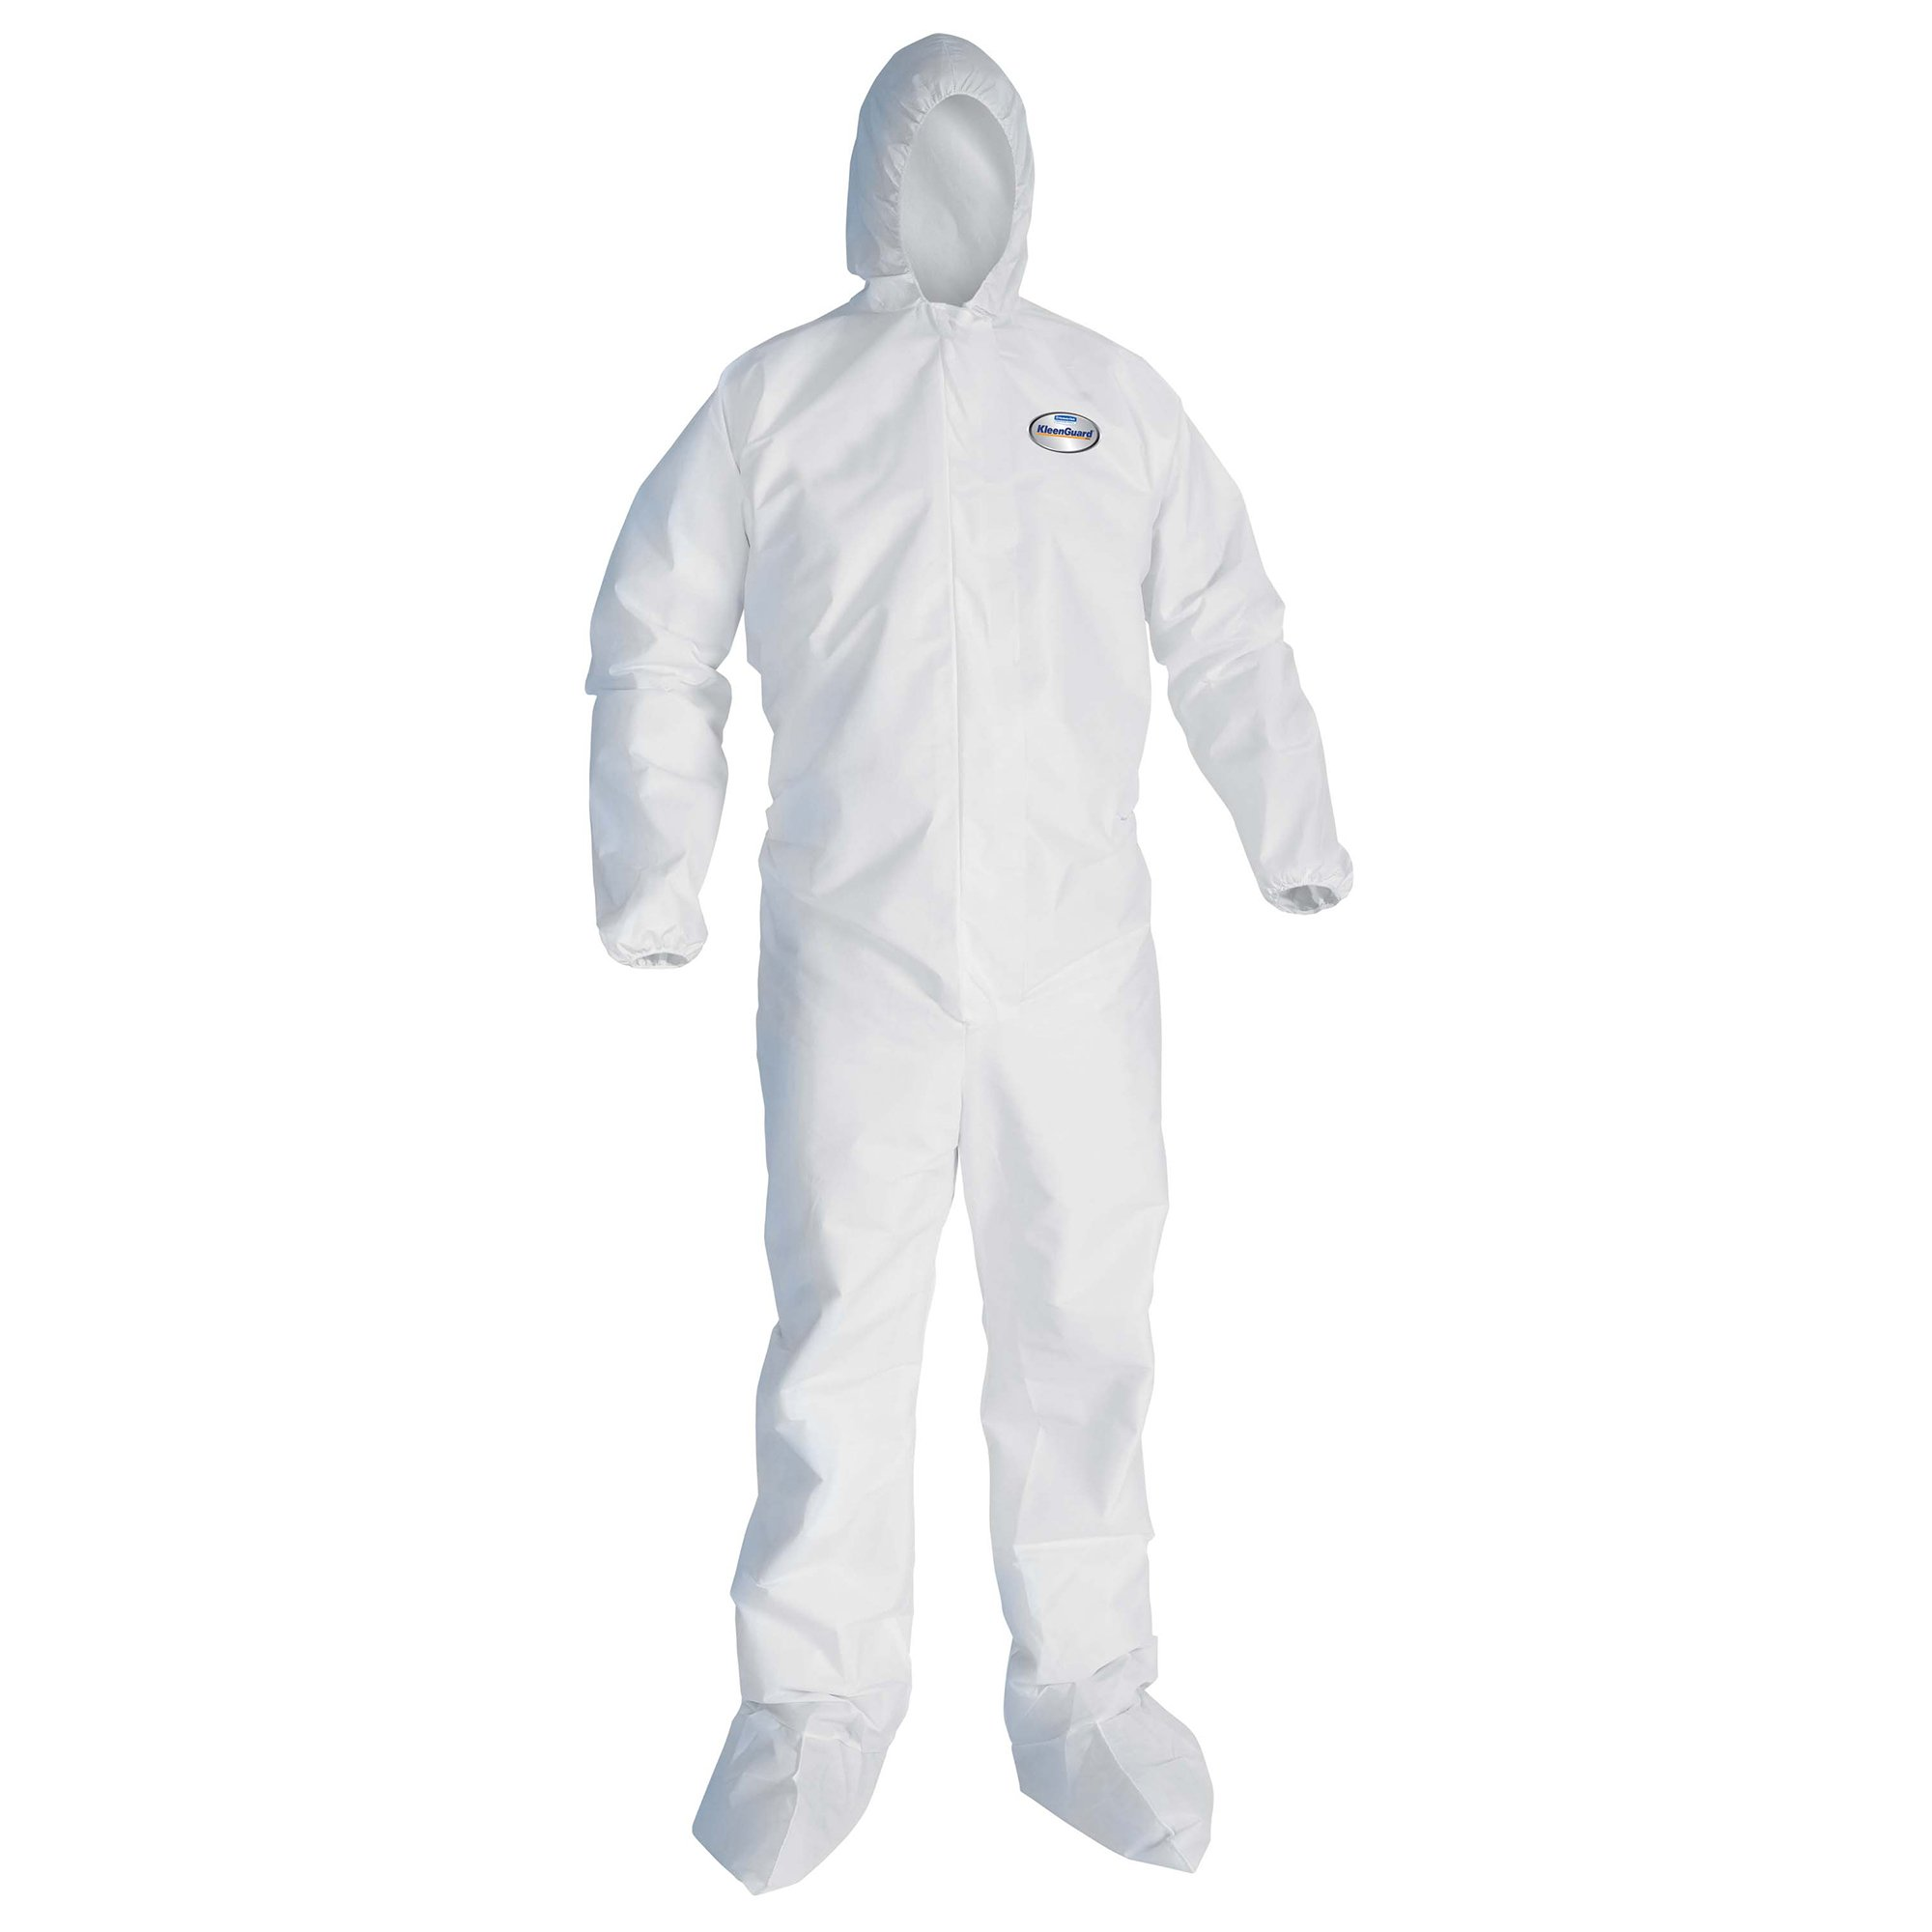 Kleenguard A10 Light Duty Coveralls (10610), Zip Front, Elastic Wrists, Hood, Boots, Breathable Material, White, 3XL, 25 / Case by Kimberly-Clark Professional